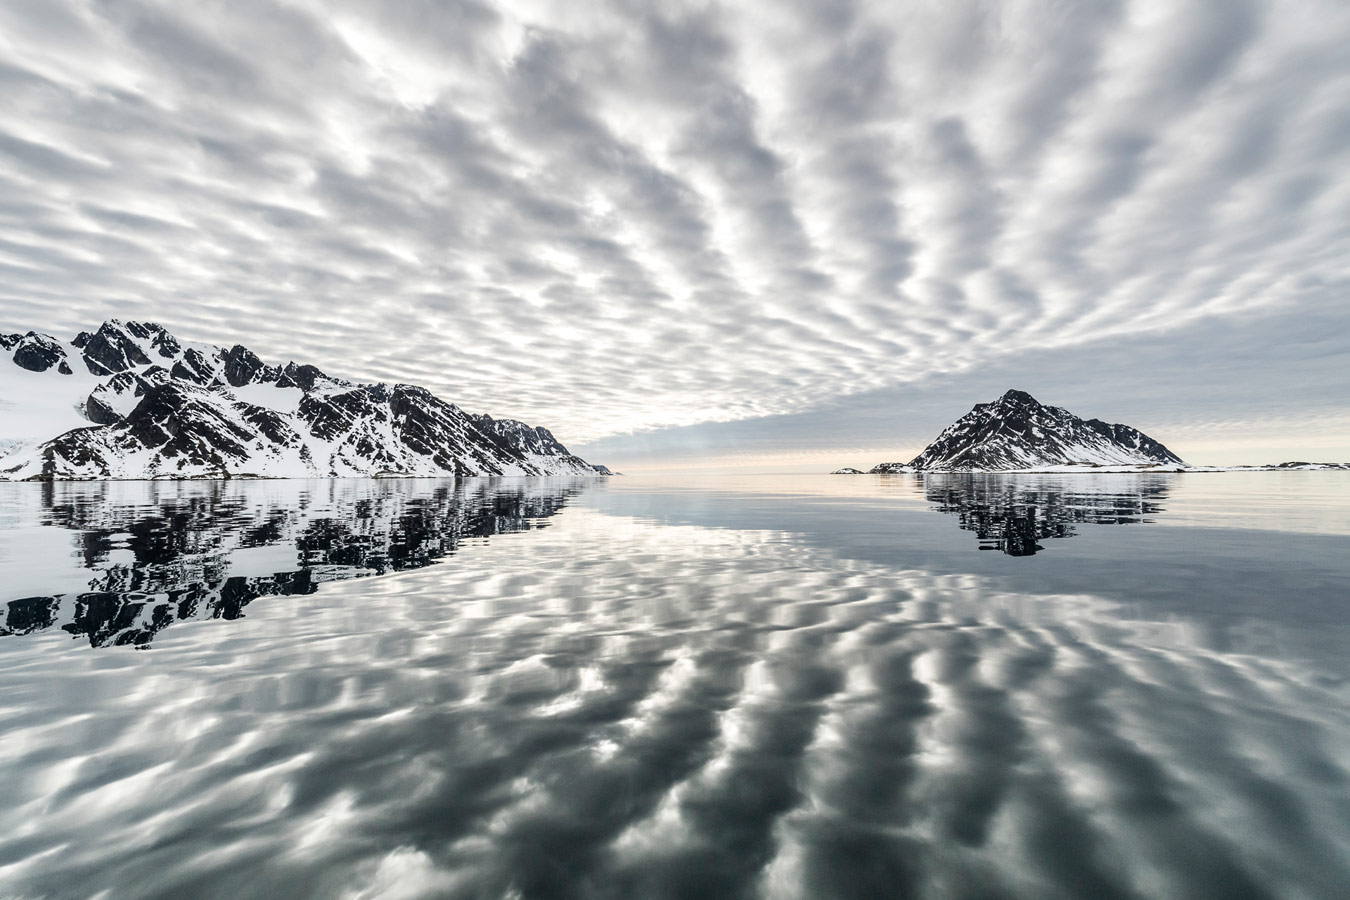 Arctic reflections, © Daisy Gilardini (CAN), Runner-up, Nature Photographer of the Year